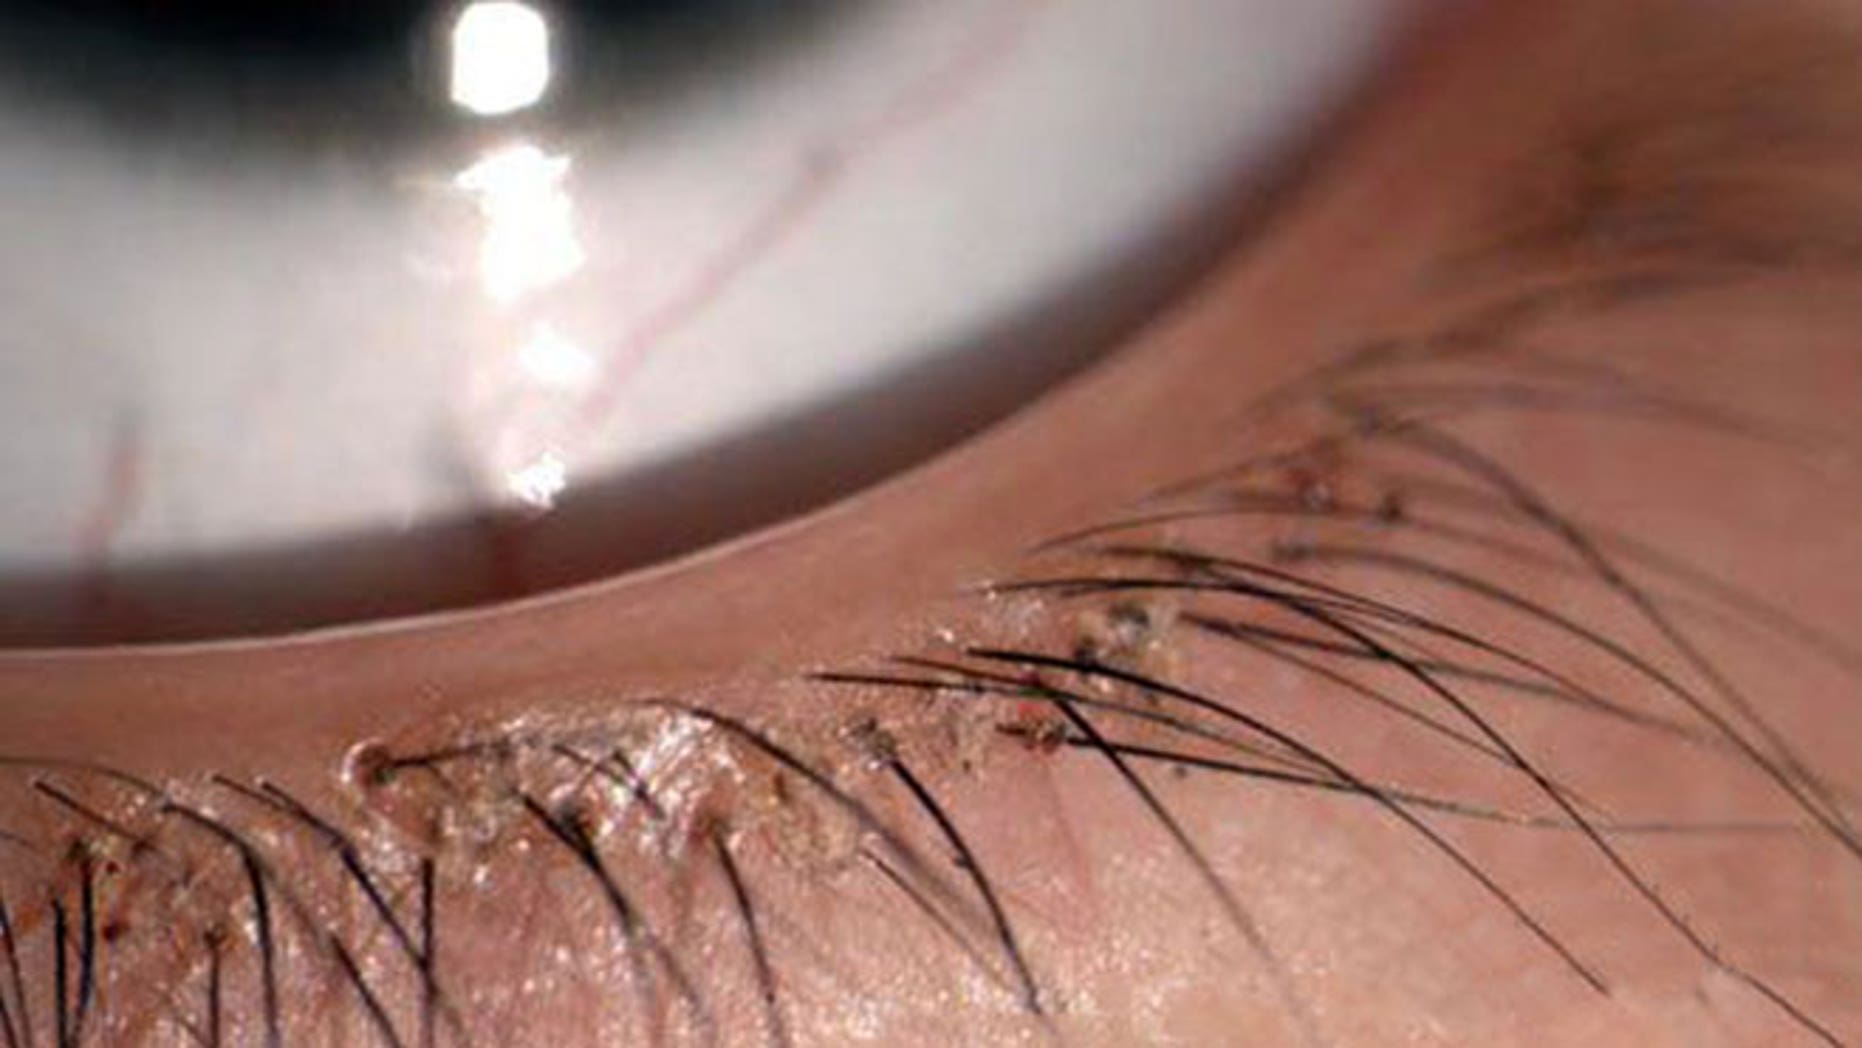 Child has eyelashes removed after doctors find 20 lice | Fox News